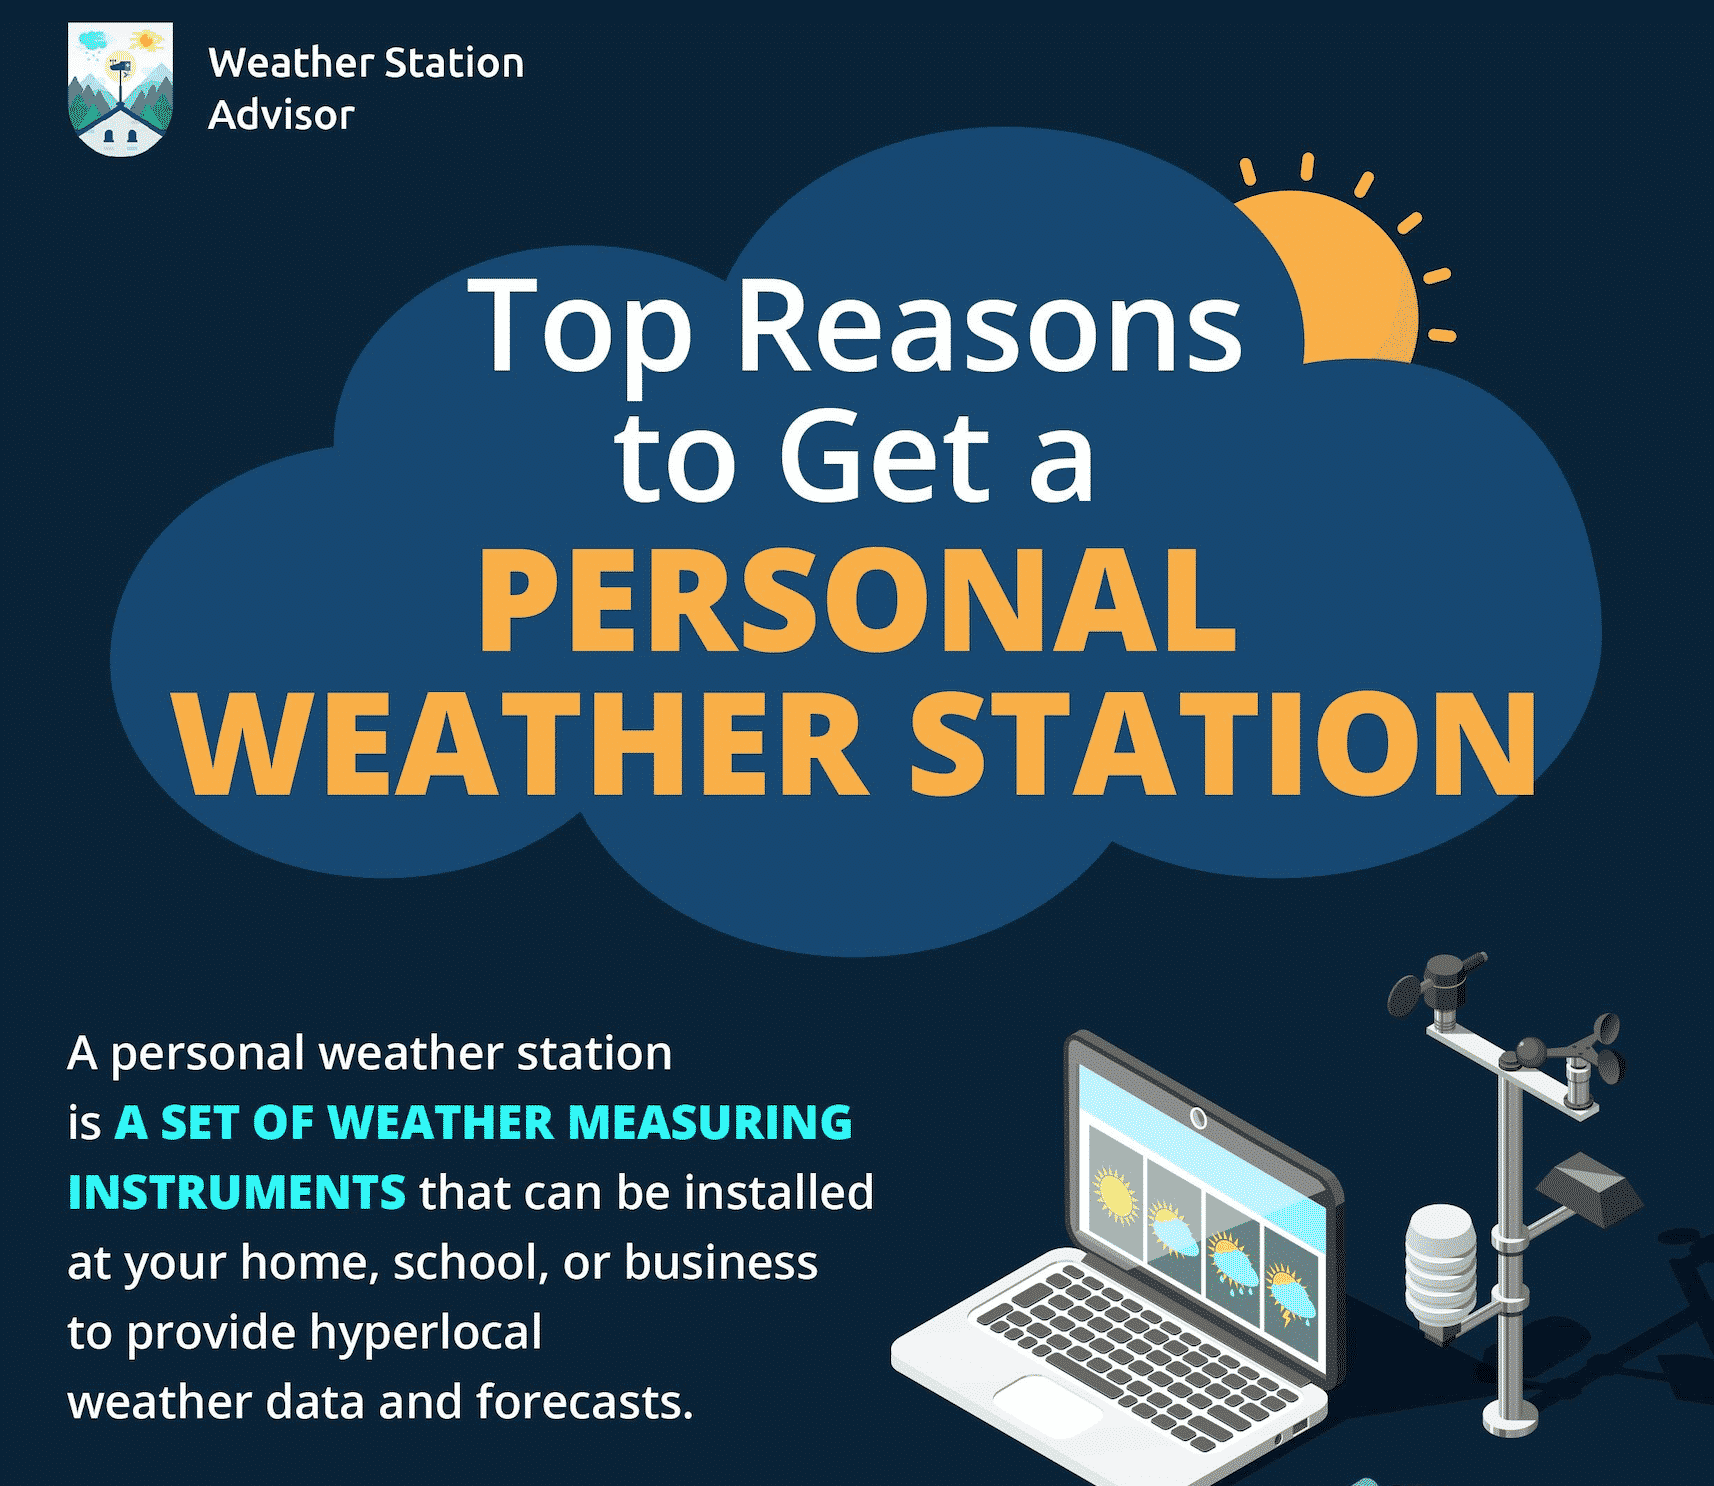 Why you should get a personal weather station